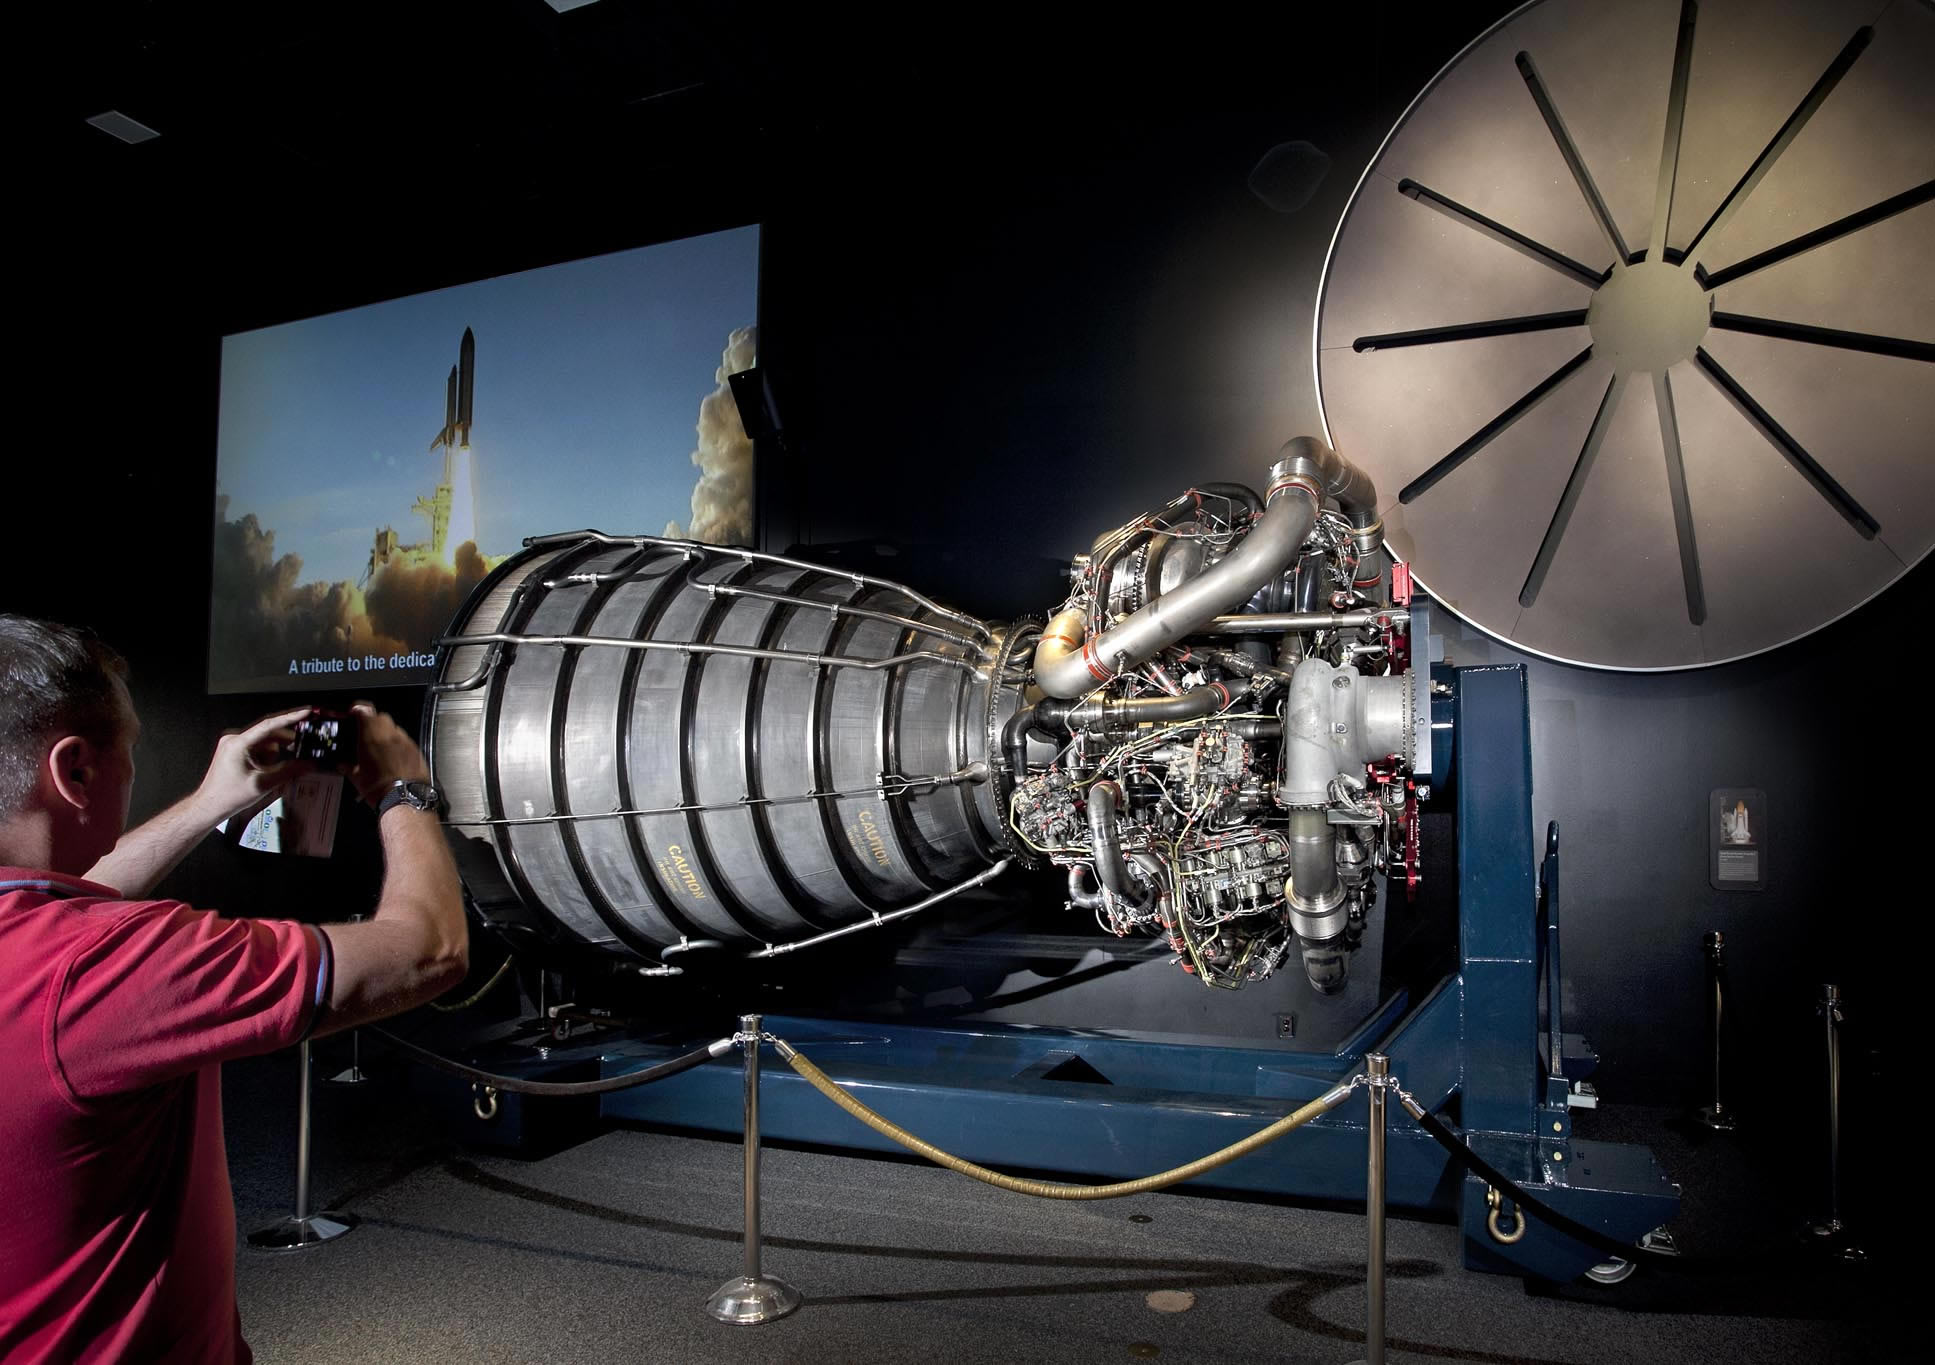 space shuttle engine - photo #9